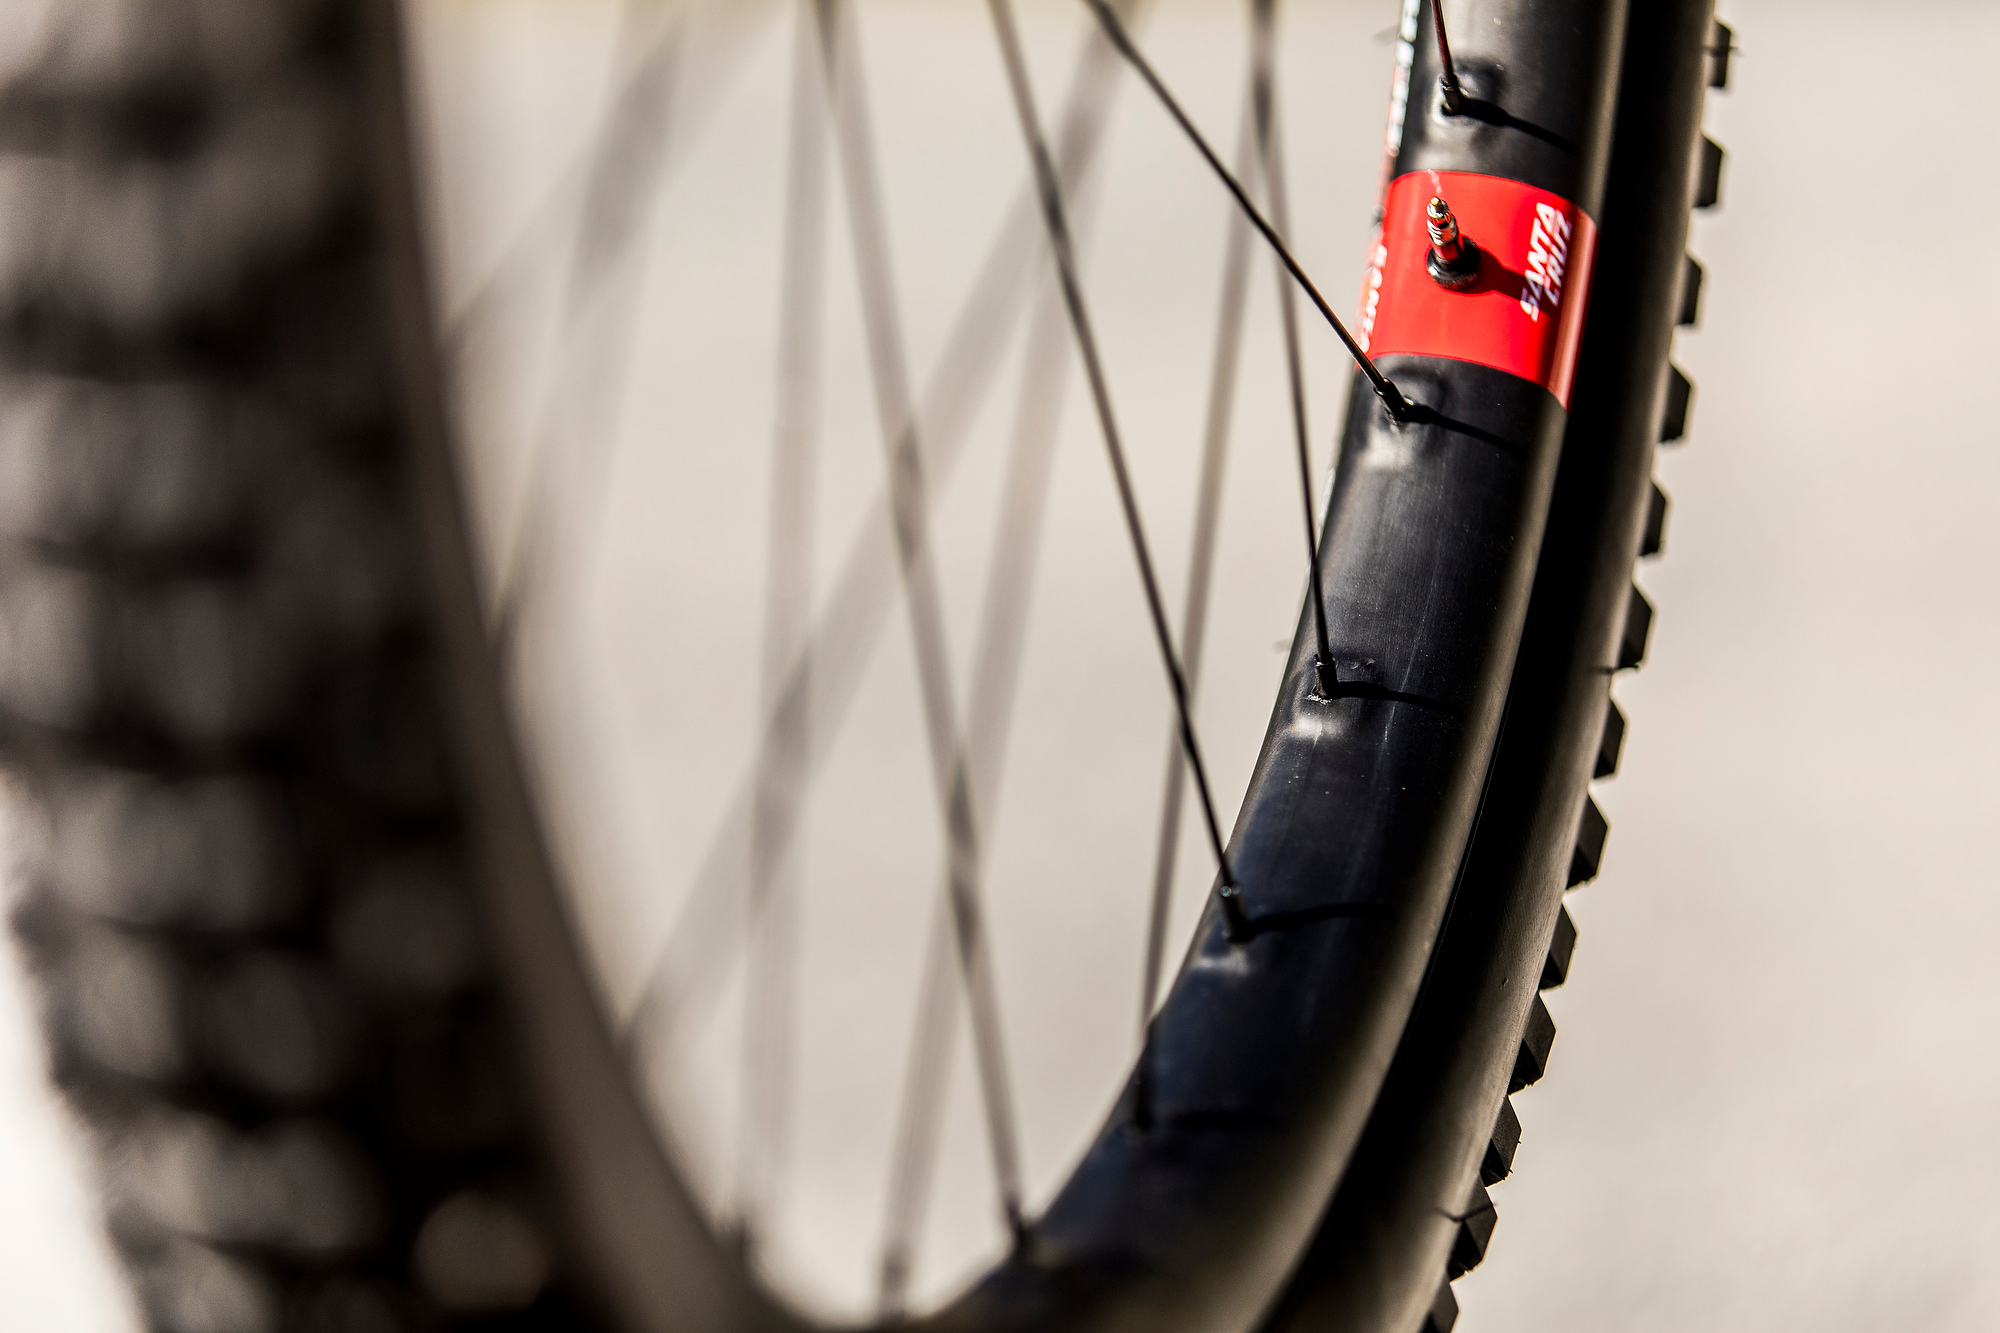 Santa Cruz spent three years developing the new Reserve wheels.